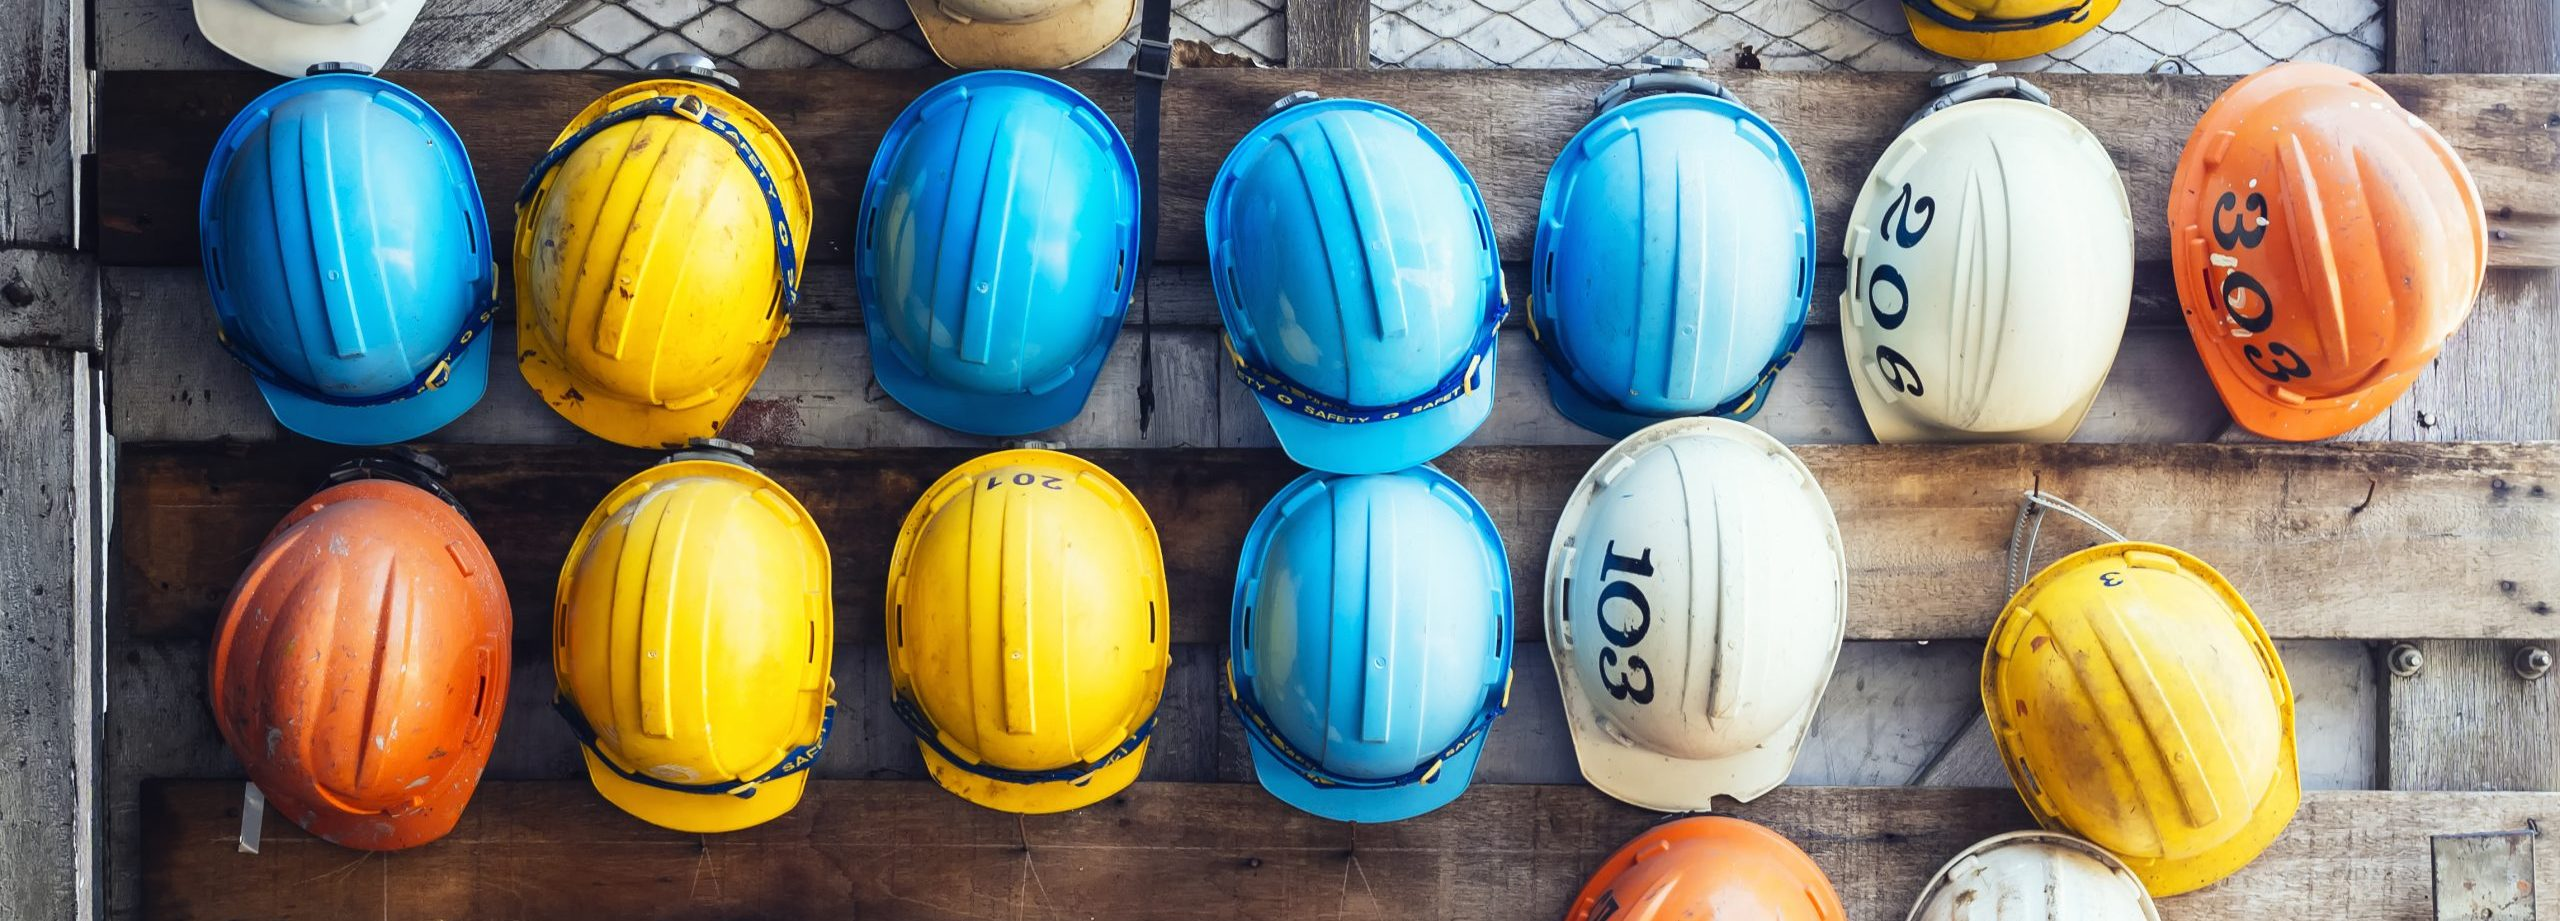 Photo of blue, yellow, orange and white hardhats hanging on a wooden wall.